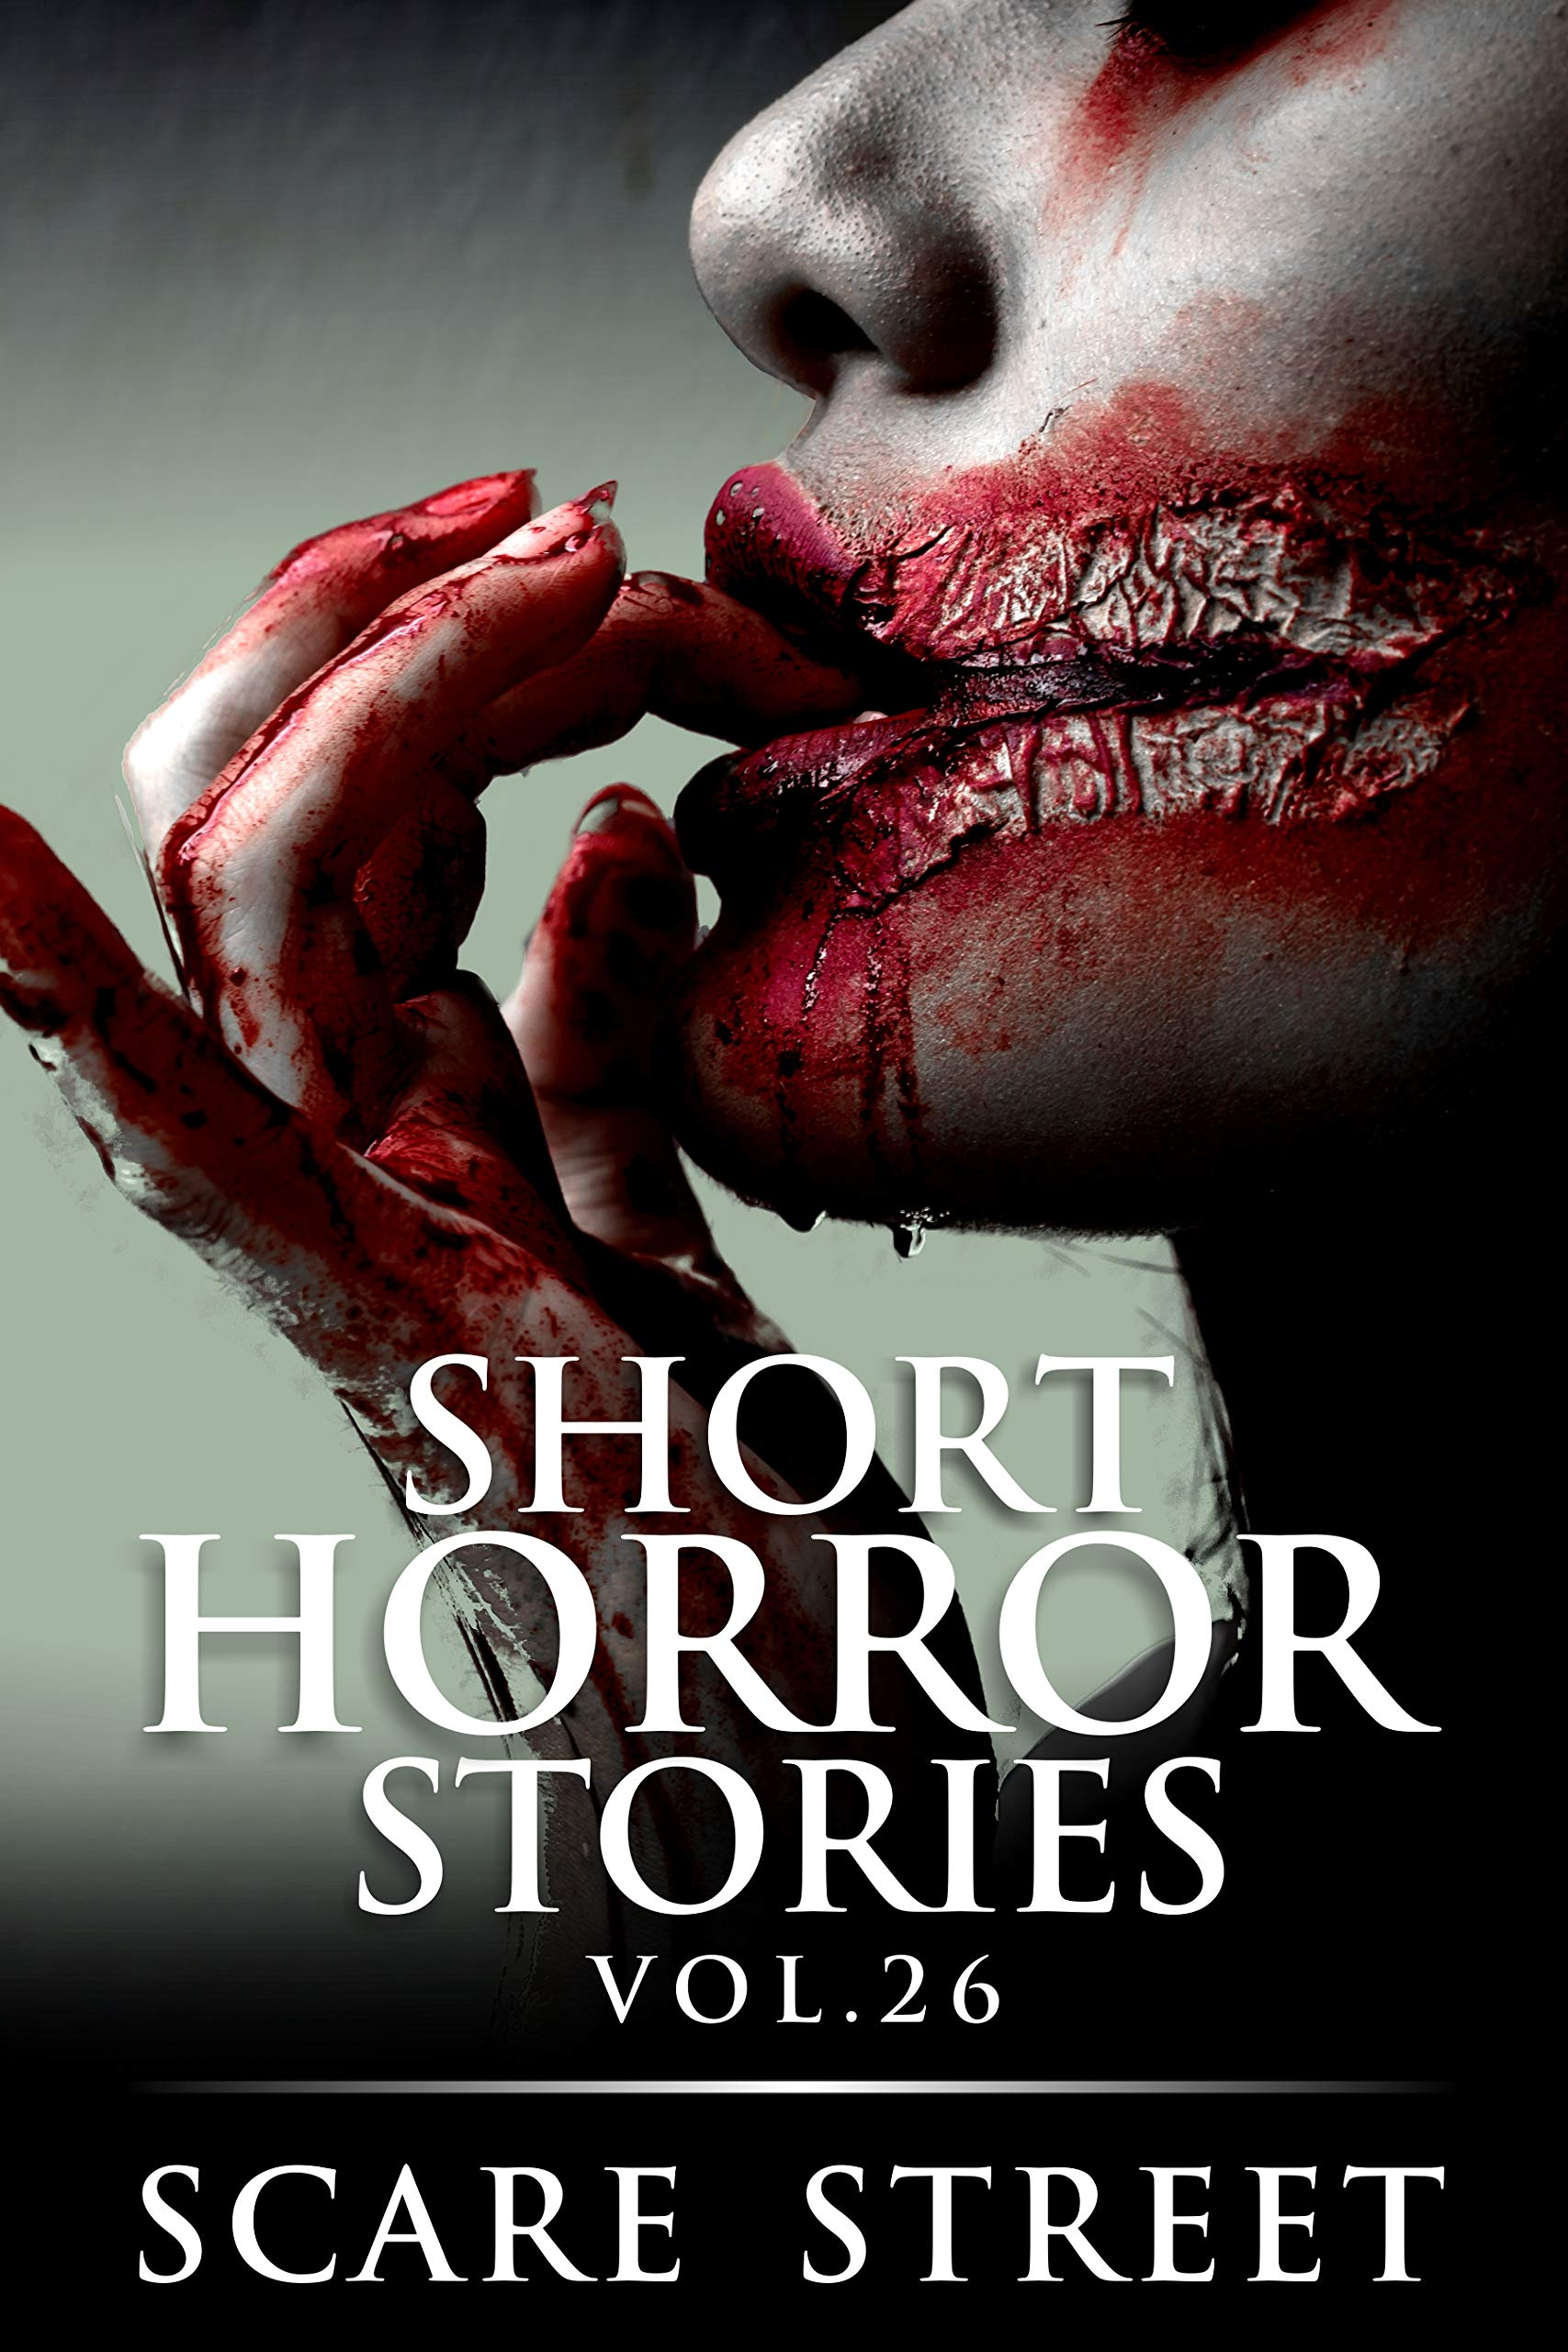 Short Horror Stories Vol. 26: Scary Ghosts, Monsters, Demons, and Hauntings